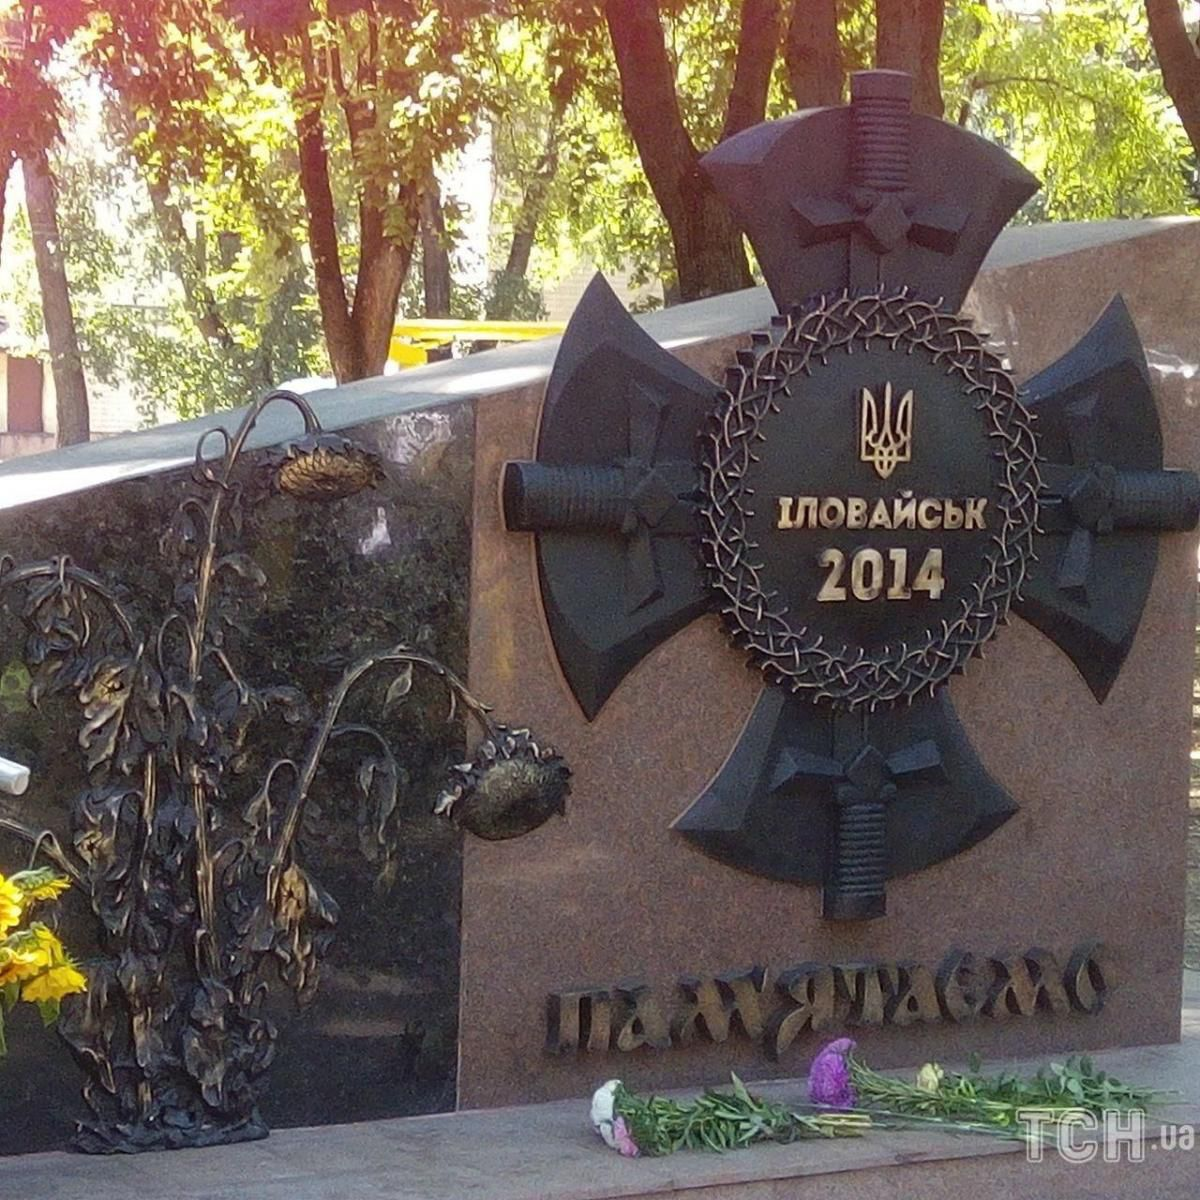 The Ilovaisk tragedy. Ukraine paid homage to the fallen heroes